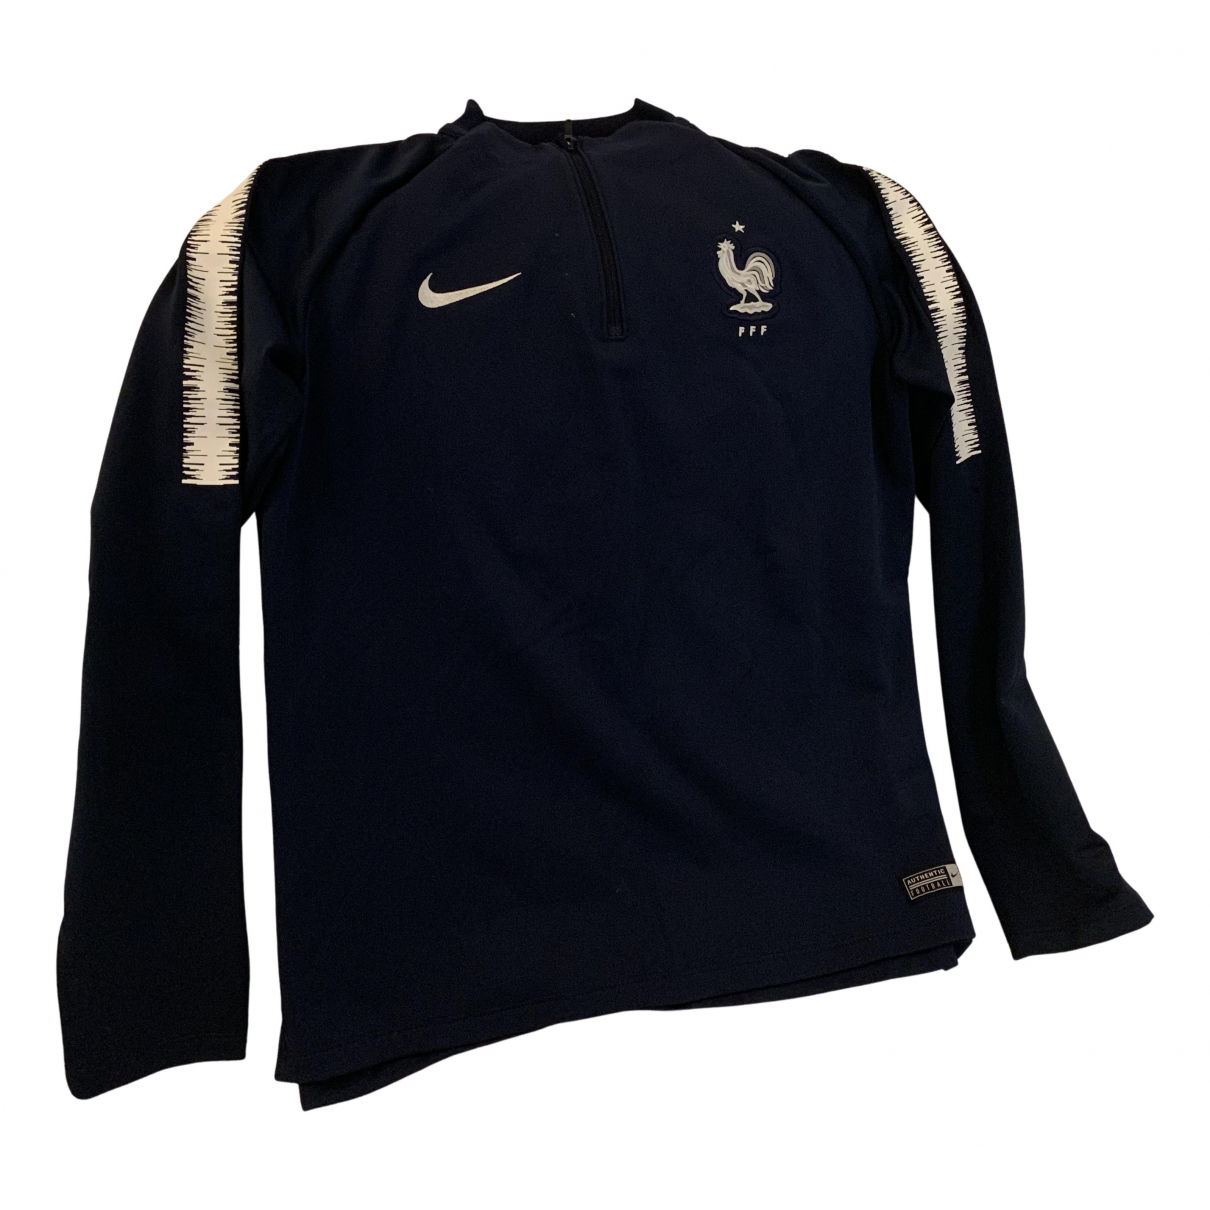 Nike N Blue Knitwear & Sweatshirts for Men M International